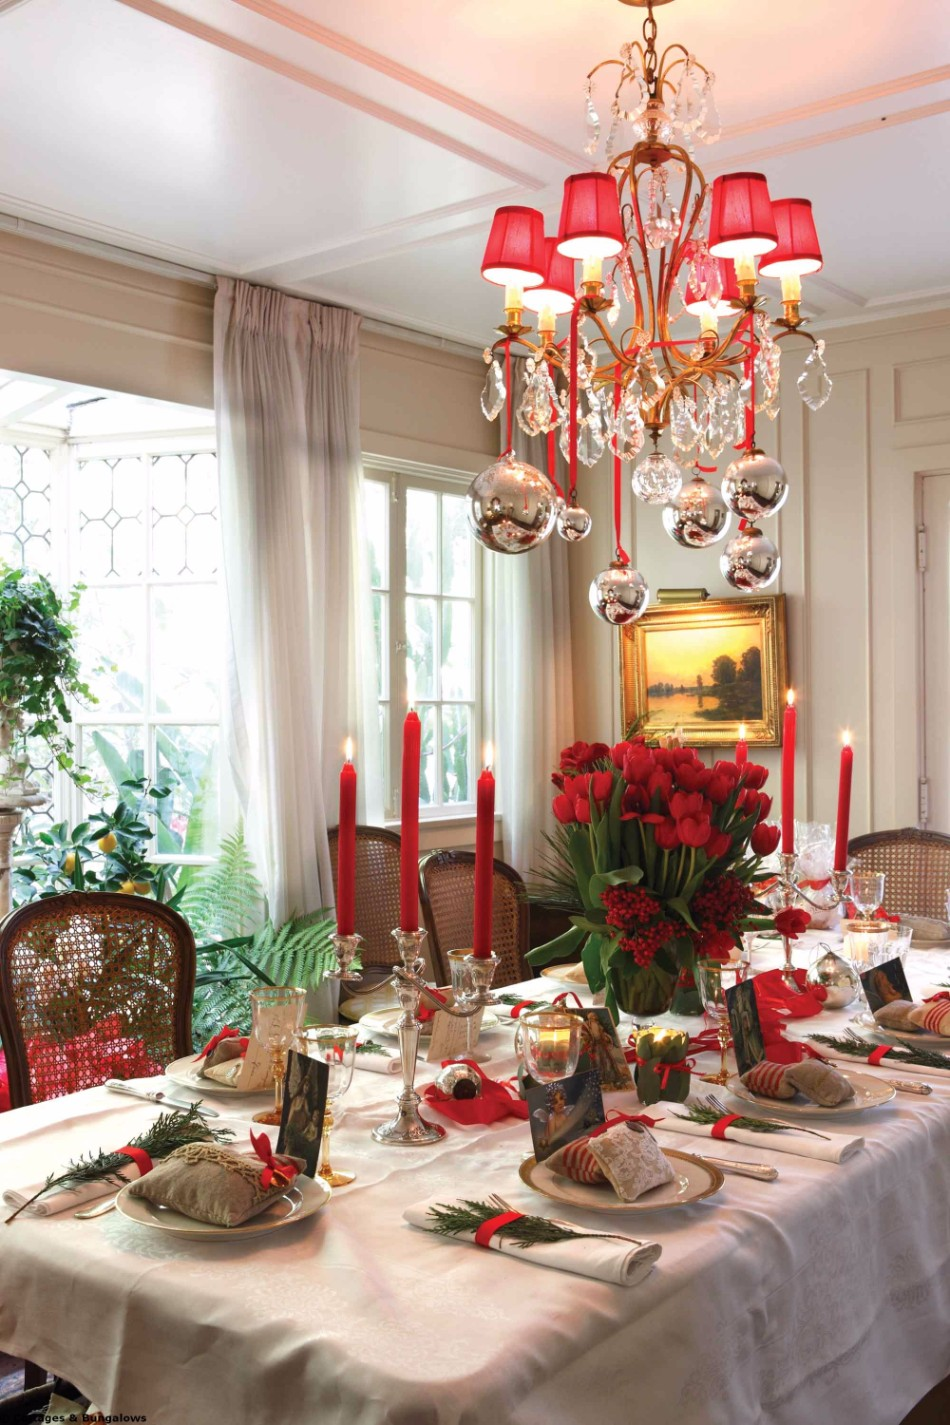 5 Ideas on How to Prepare The Best Dining Table Decor for Christmas | www.bocadolobo.com #moderndiningtables #diningroom #thediningroom #diningtable #christmas #christmasdecor #tableware #tabledecor @moderndiningtables dining table decor 5 Ideas on How to Prepare The Best Dining Table Decor for Christmas 5 Ideas on How to Prepare The Best Dining Table Decor for Christmas 10